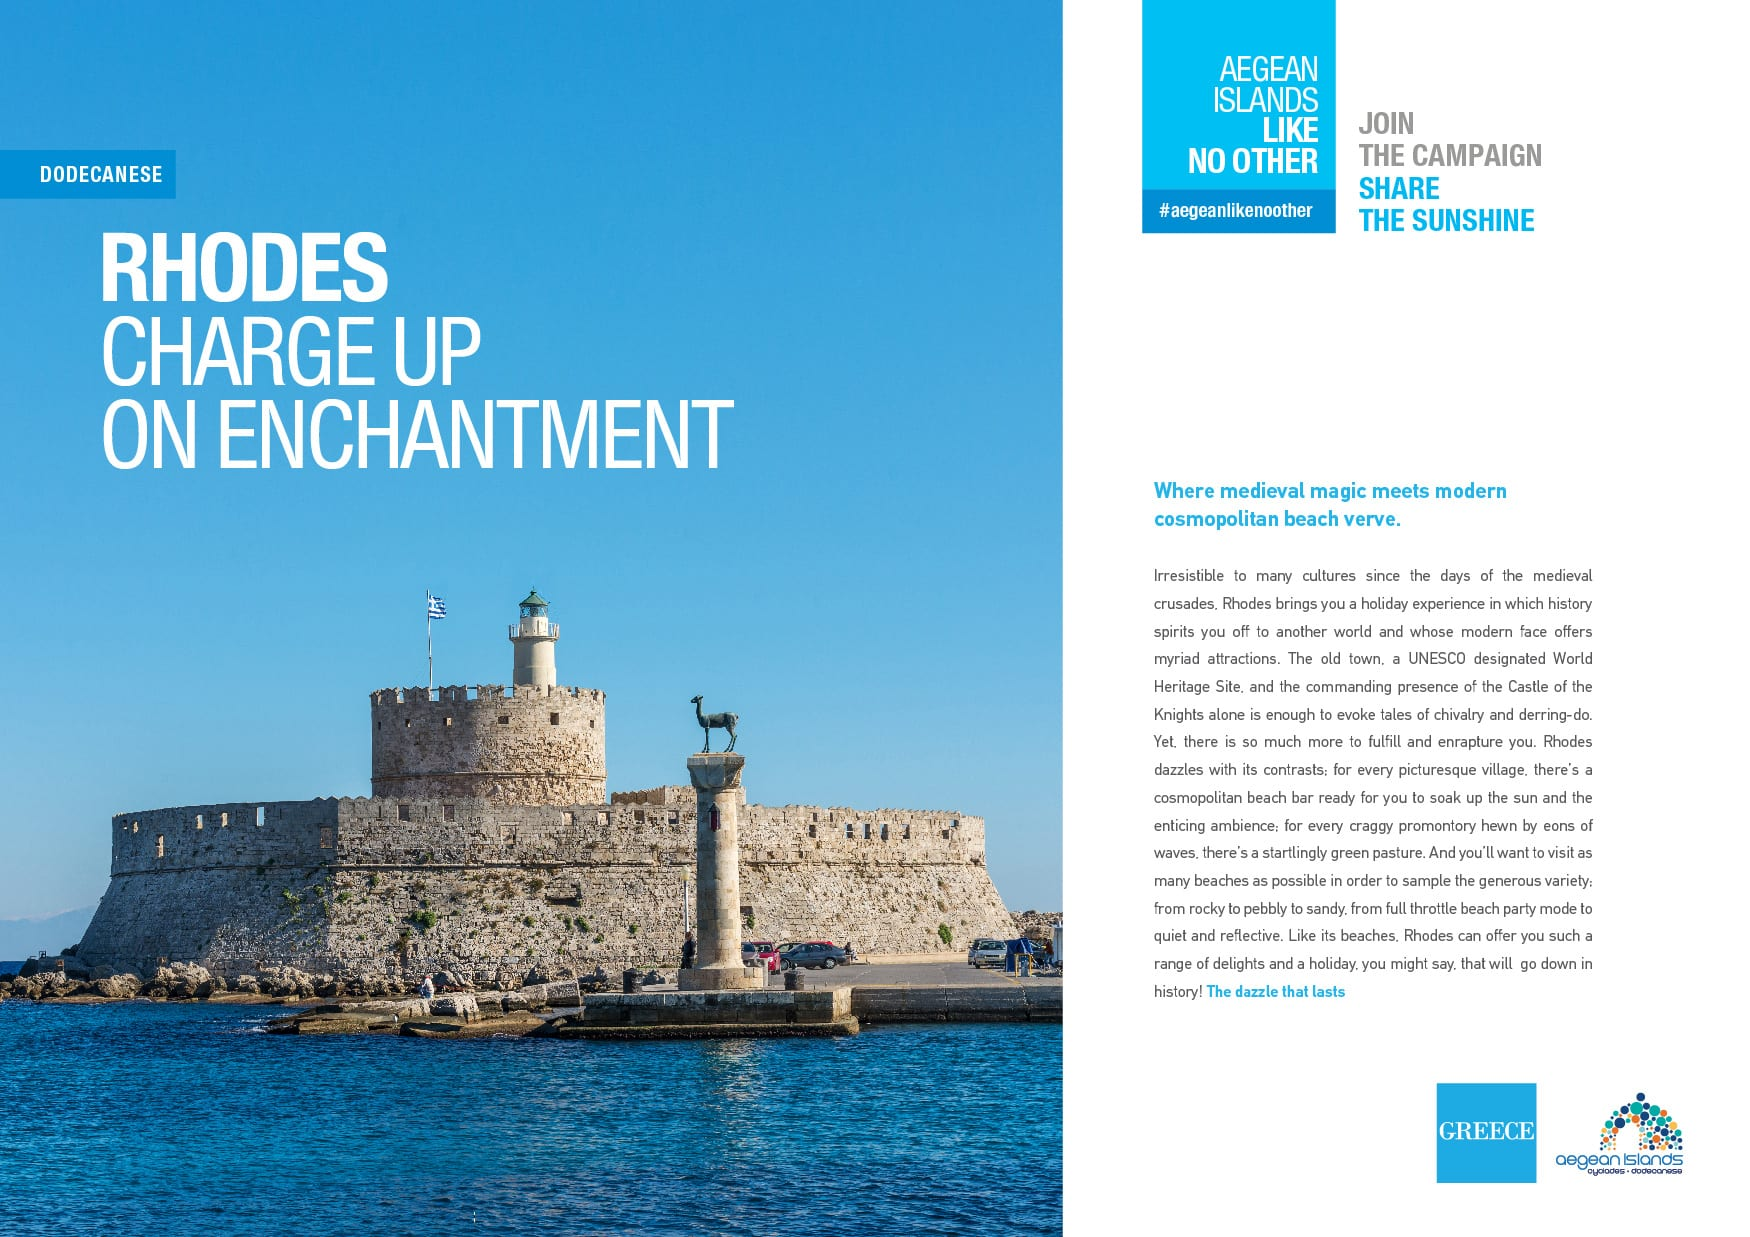 Dodecanese_Rhodes_F_Main